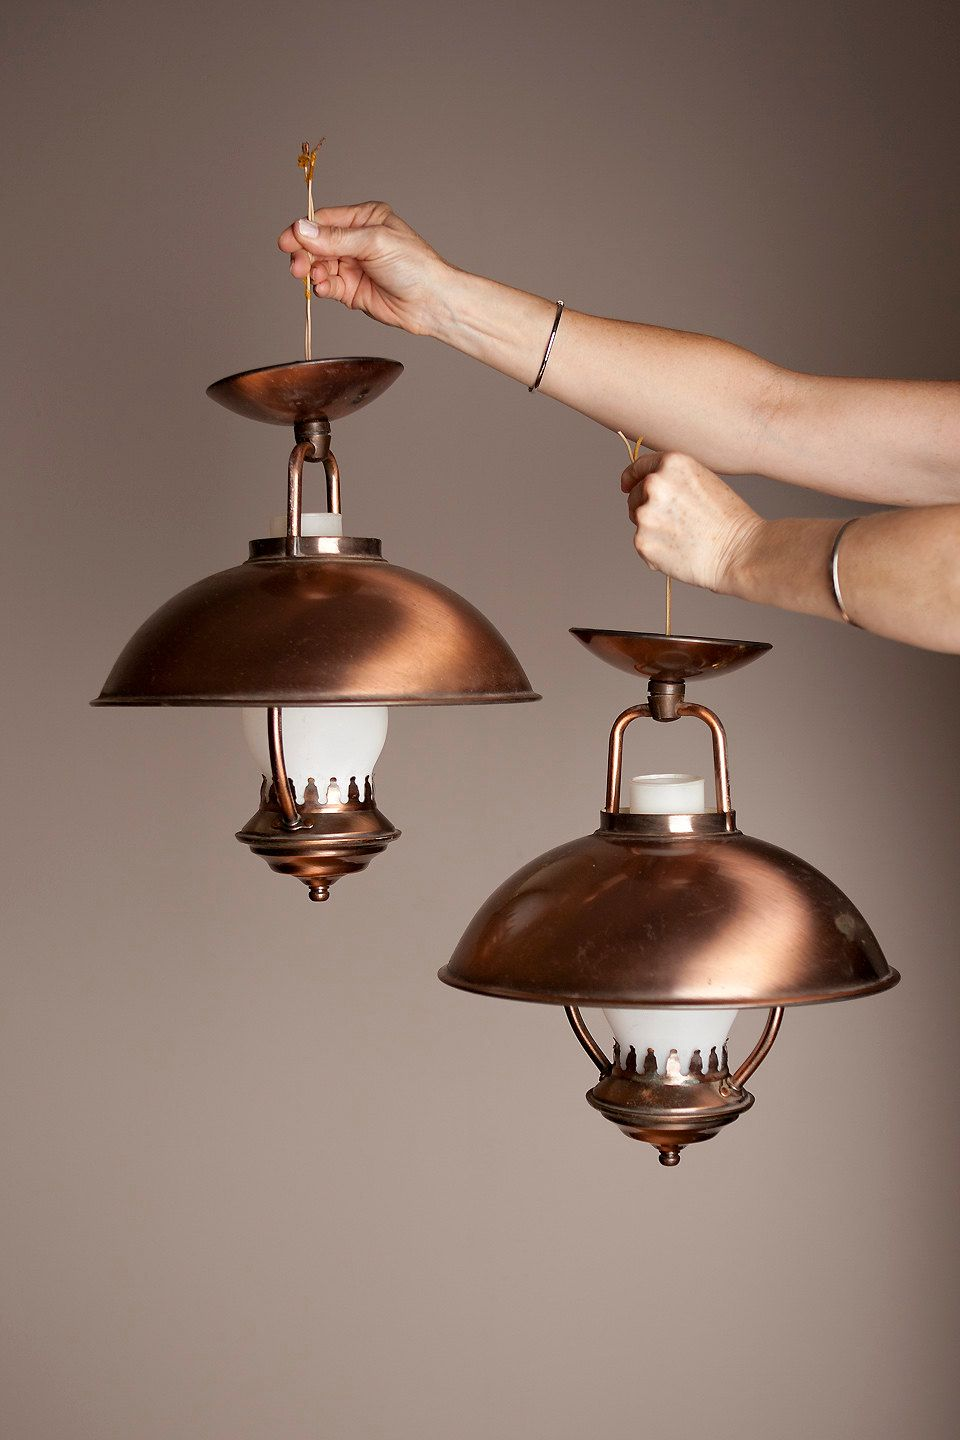 Set Mid Century Retro Colonial Copper Lantern Ceiling Electric Light ...